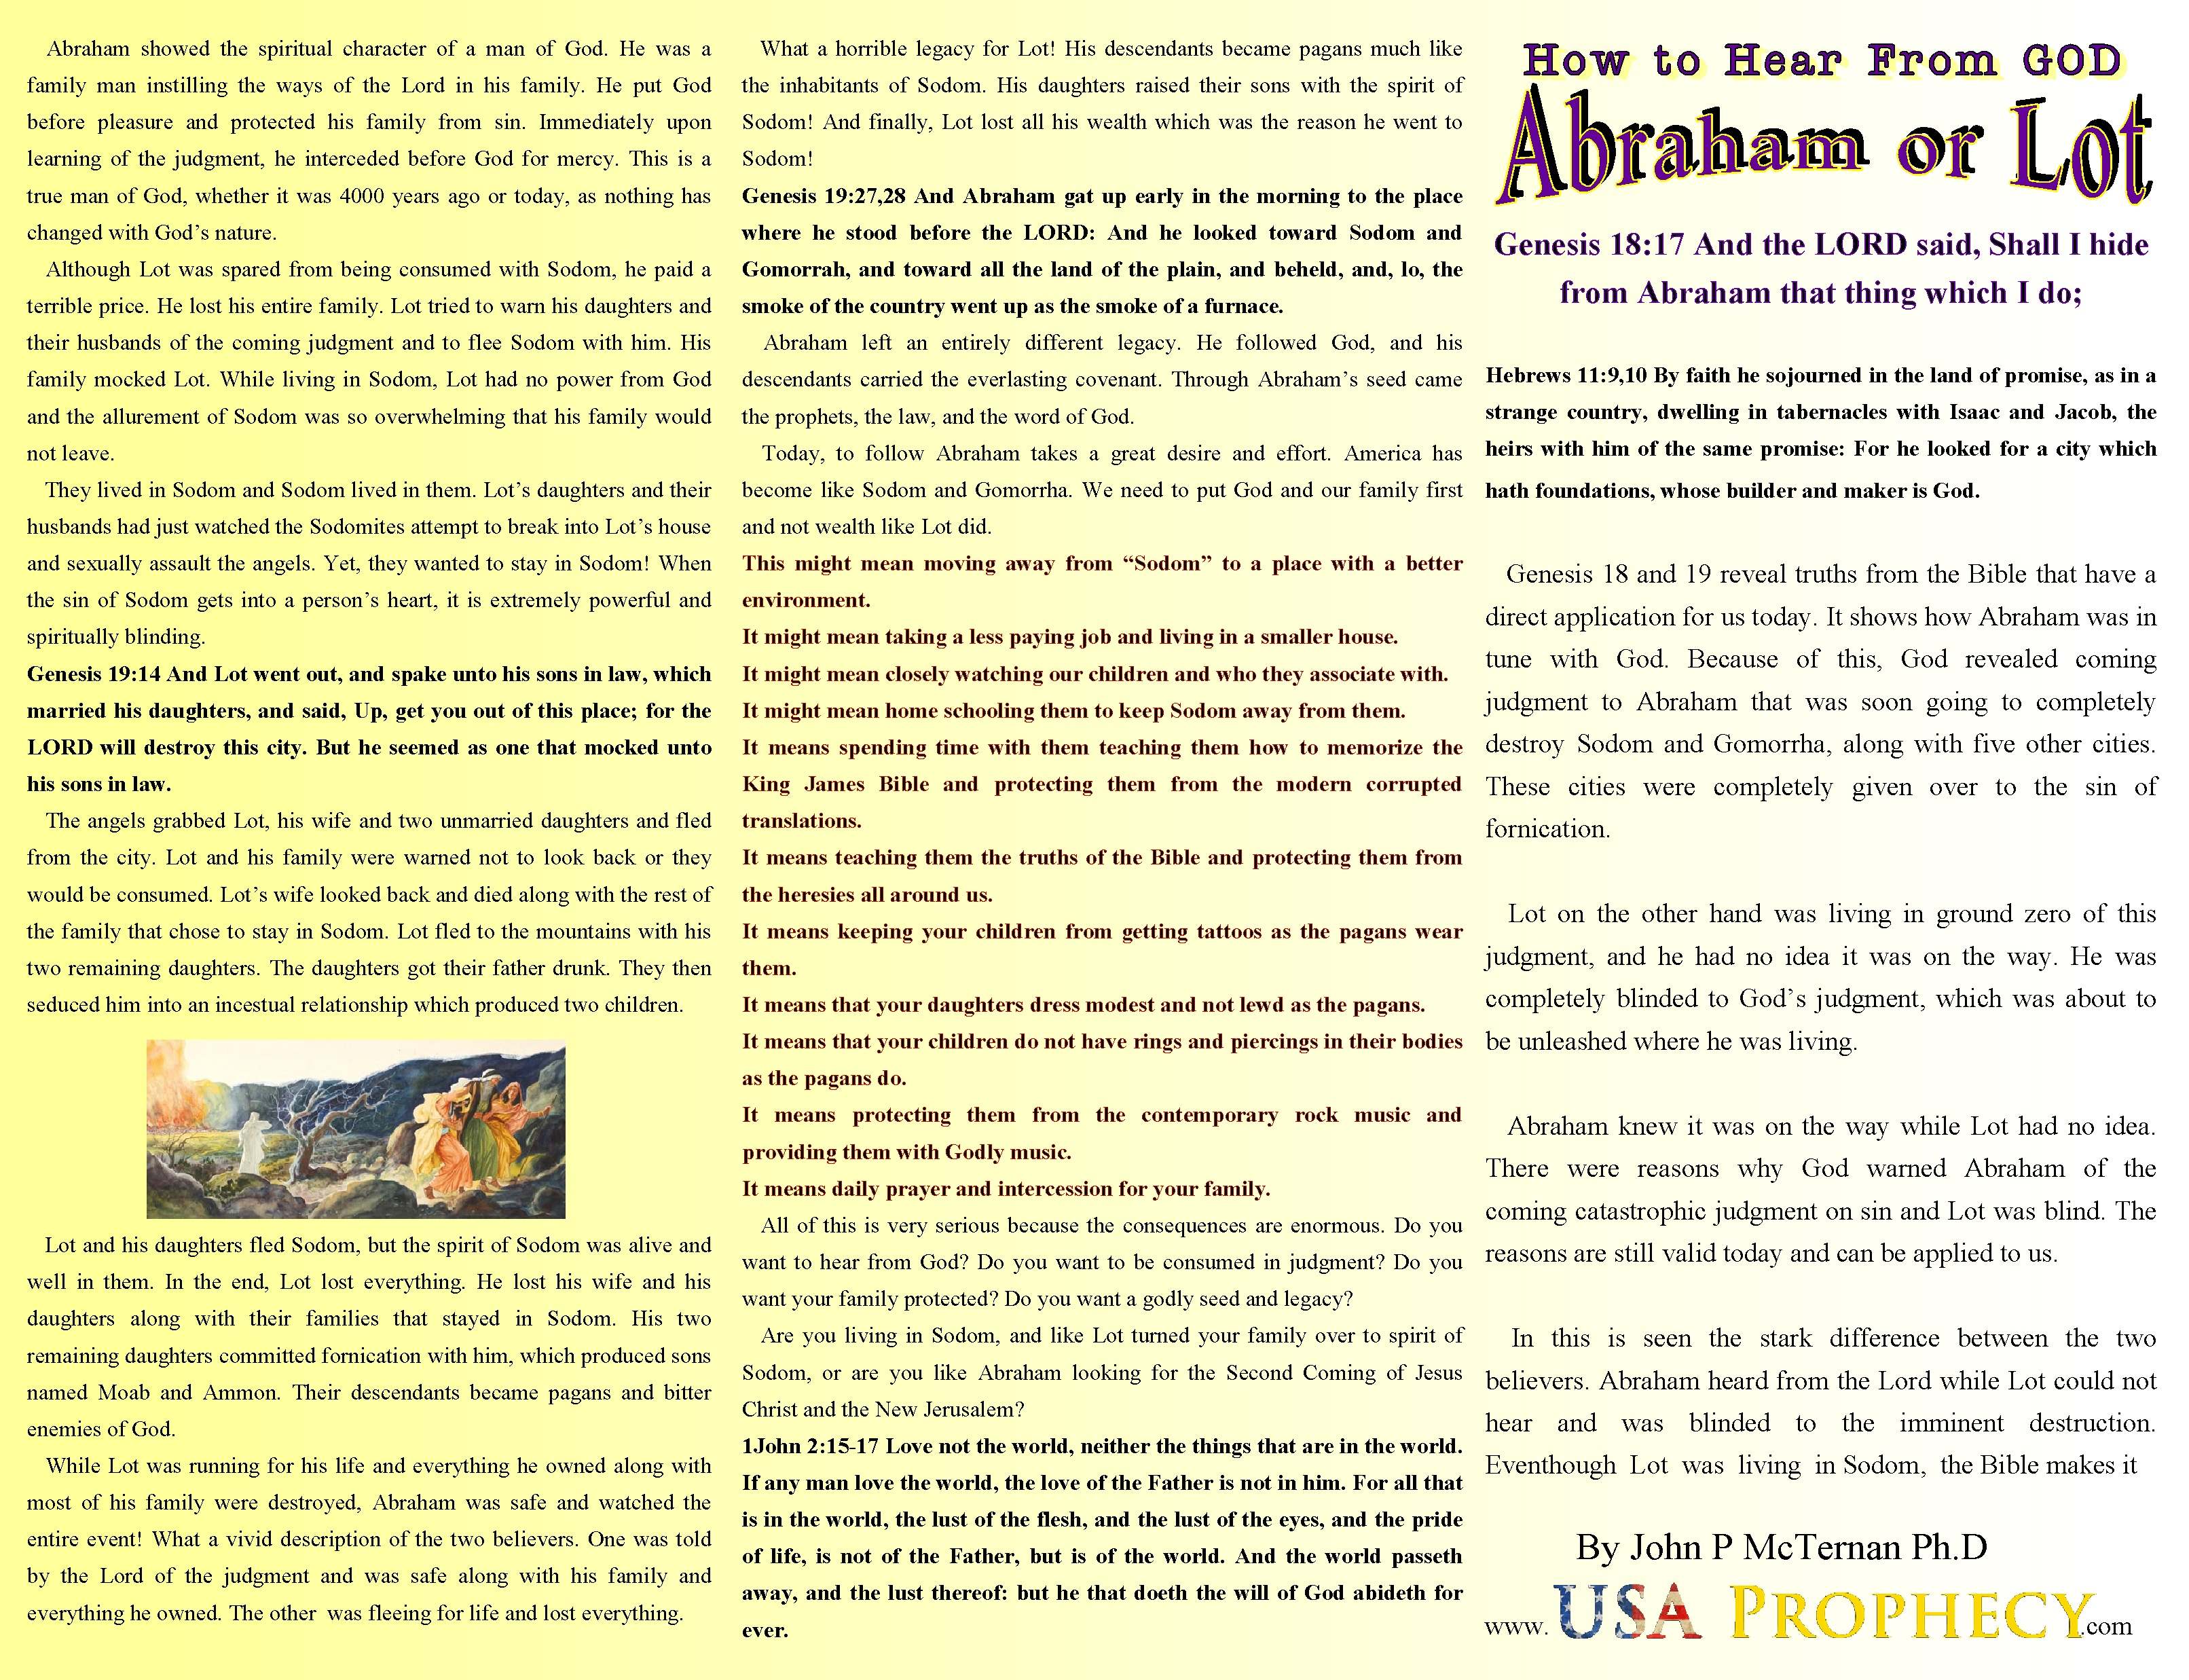 new brochure how to hear from god abraham or lot u2013 john